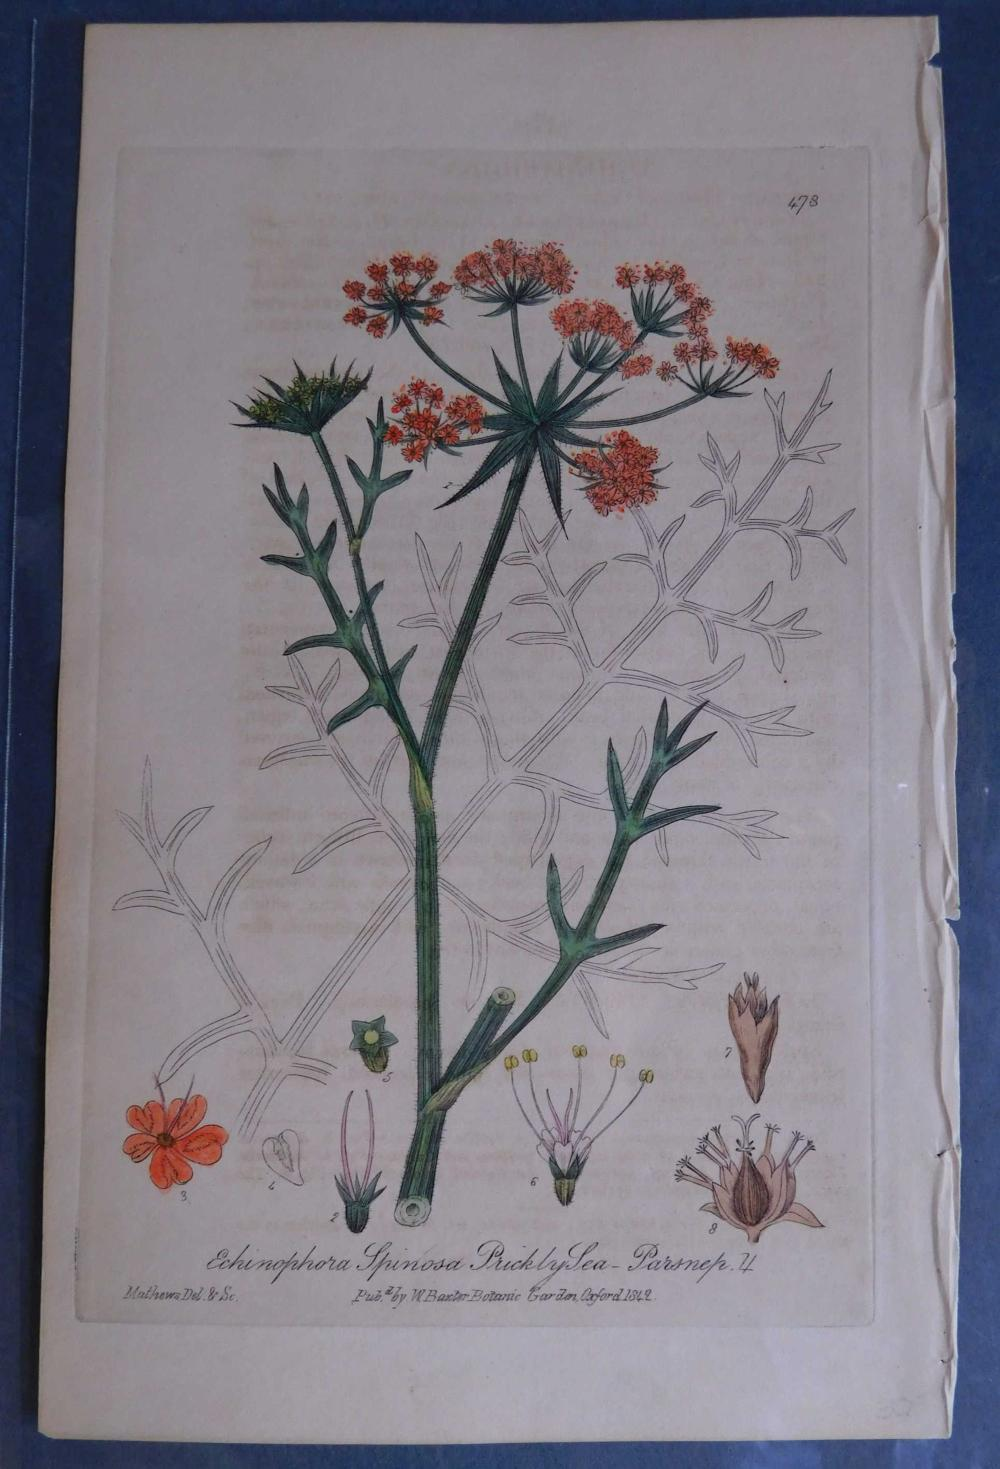 Approx. 20 hand colored botanical engravings